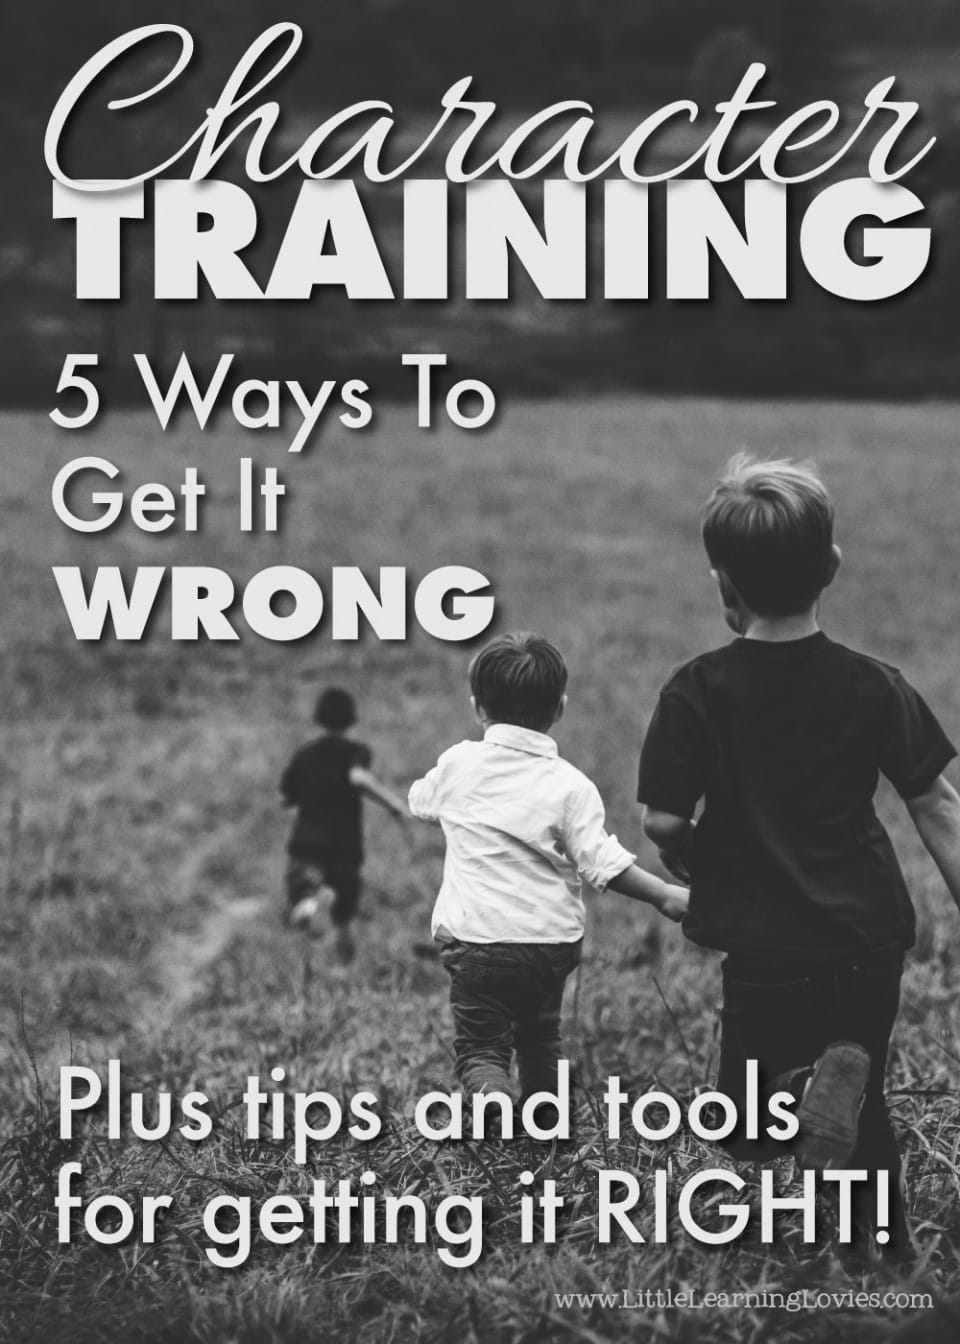 Character Training - Five Ways To Get It Wrong plus tips and tools to get it right!